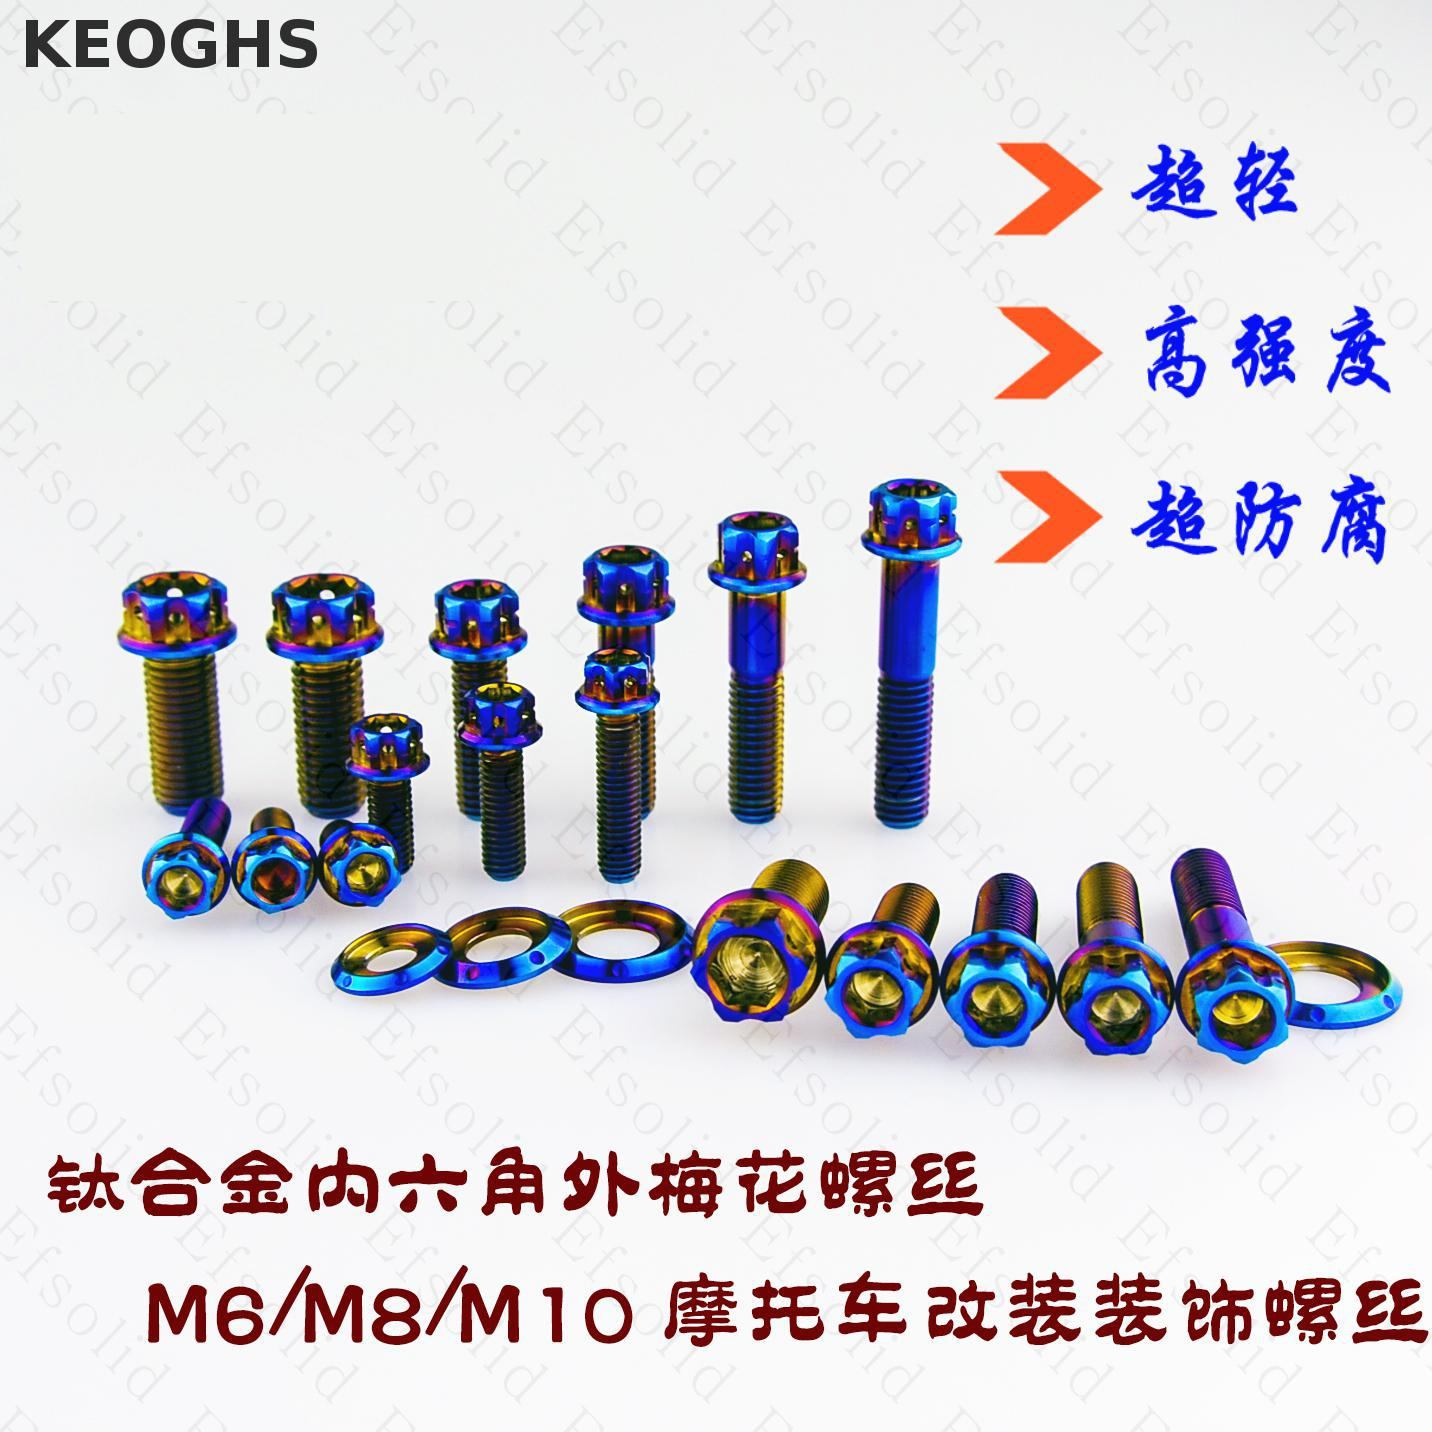 Keoghs High Quality Motorcycle Tc4 Titanium Screw M6m8m10 with washer Ornament For Honda Yamaha Kawasaki Suzuki Bmw Ducati bottlegourd breeding